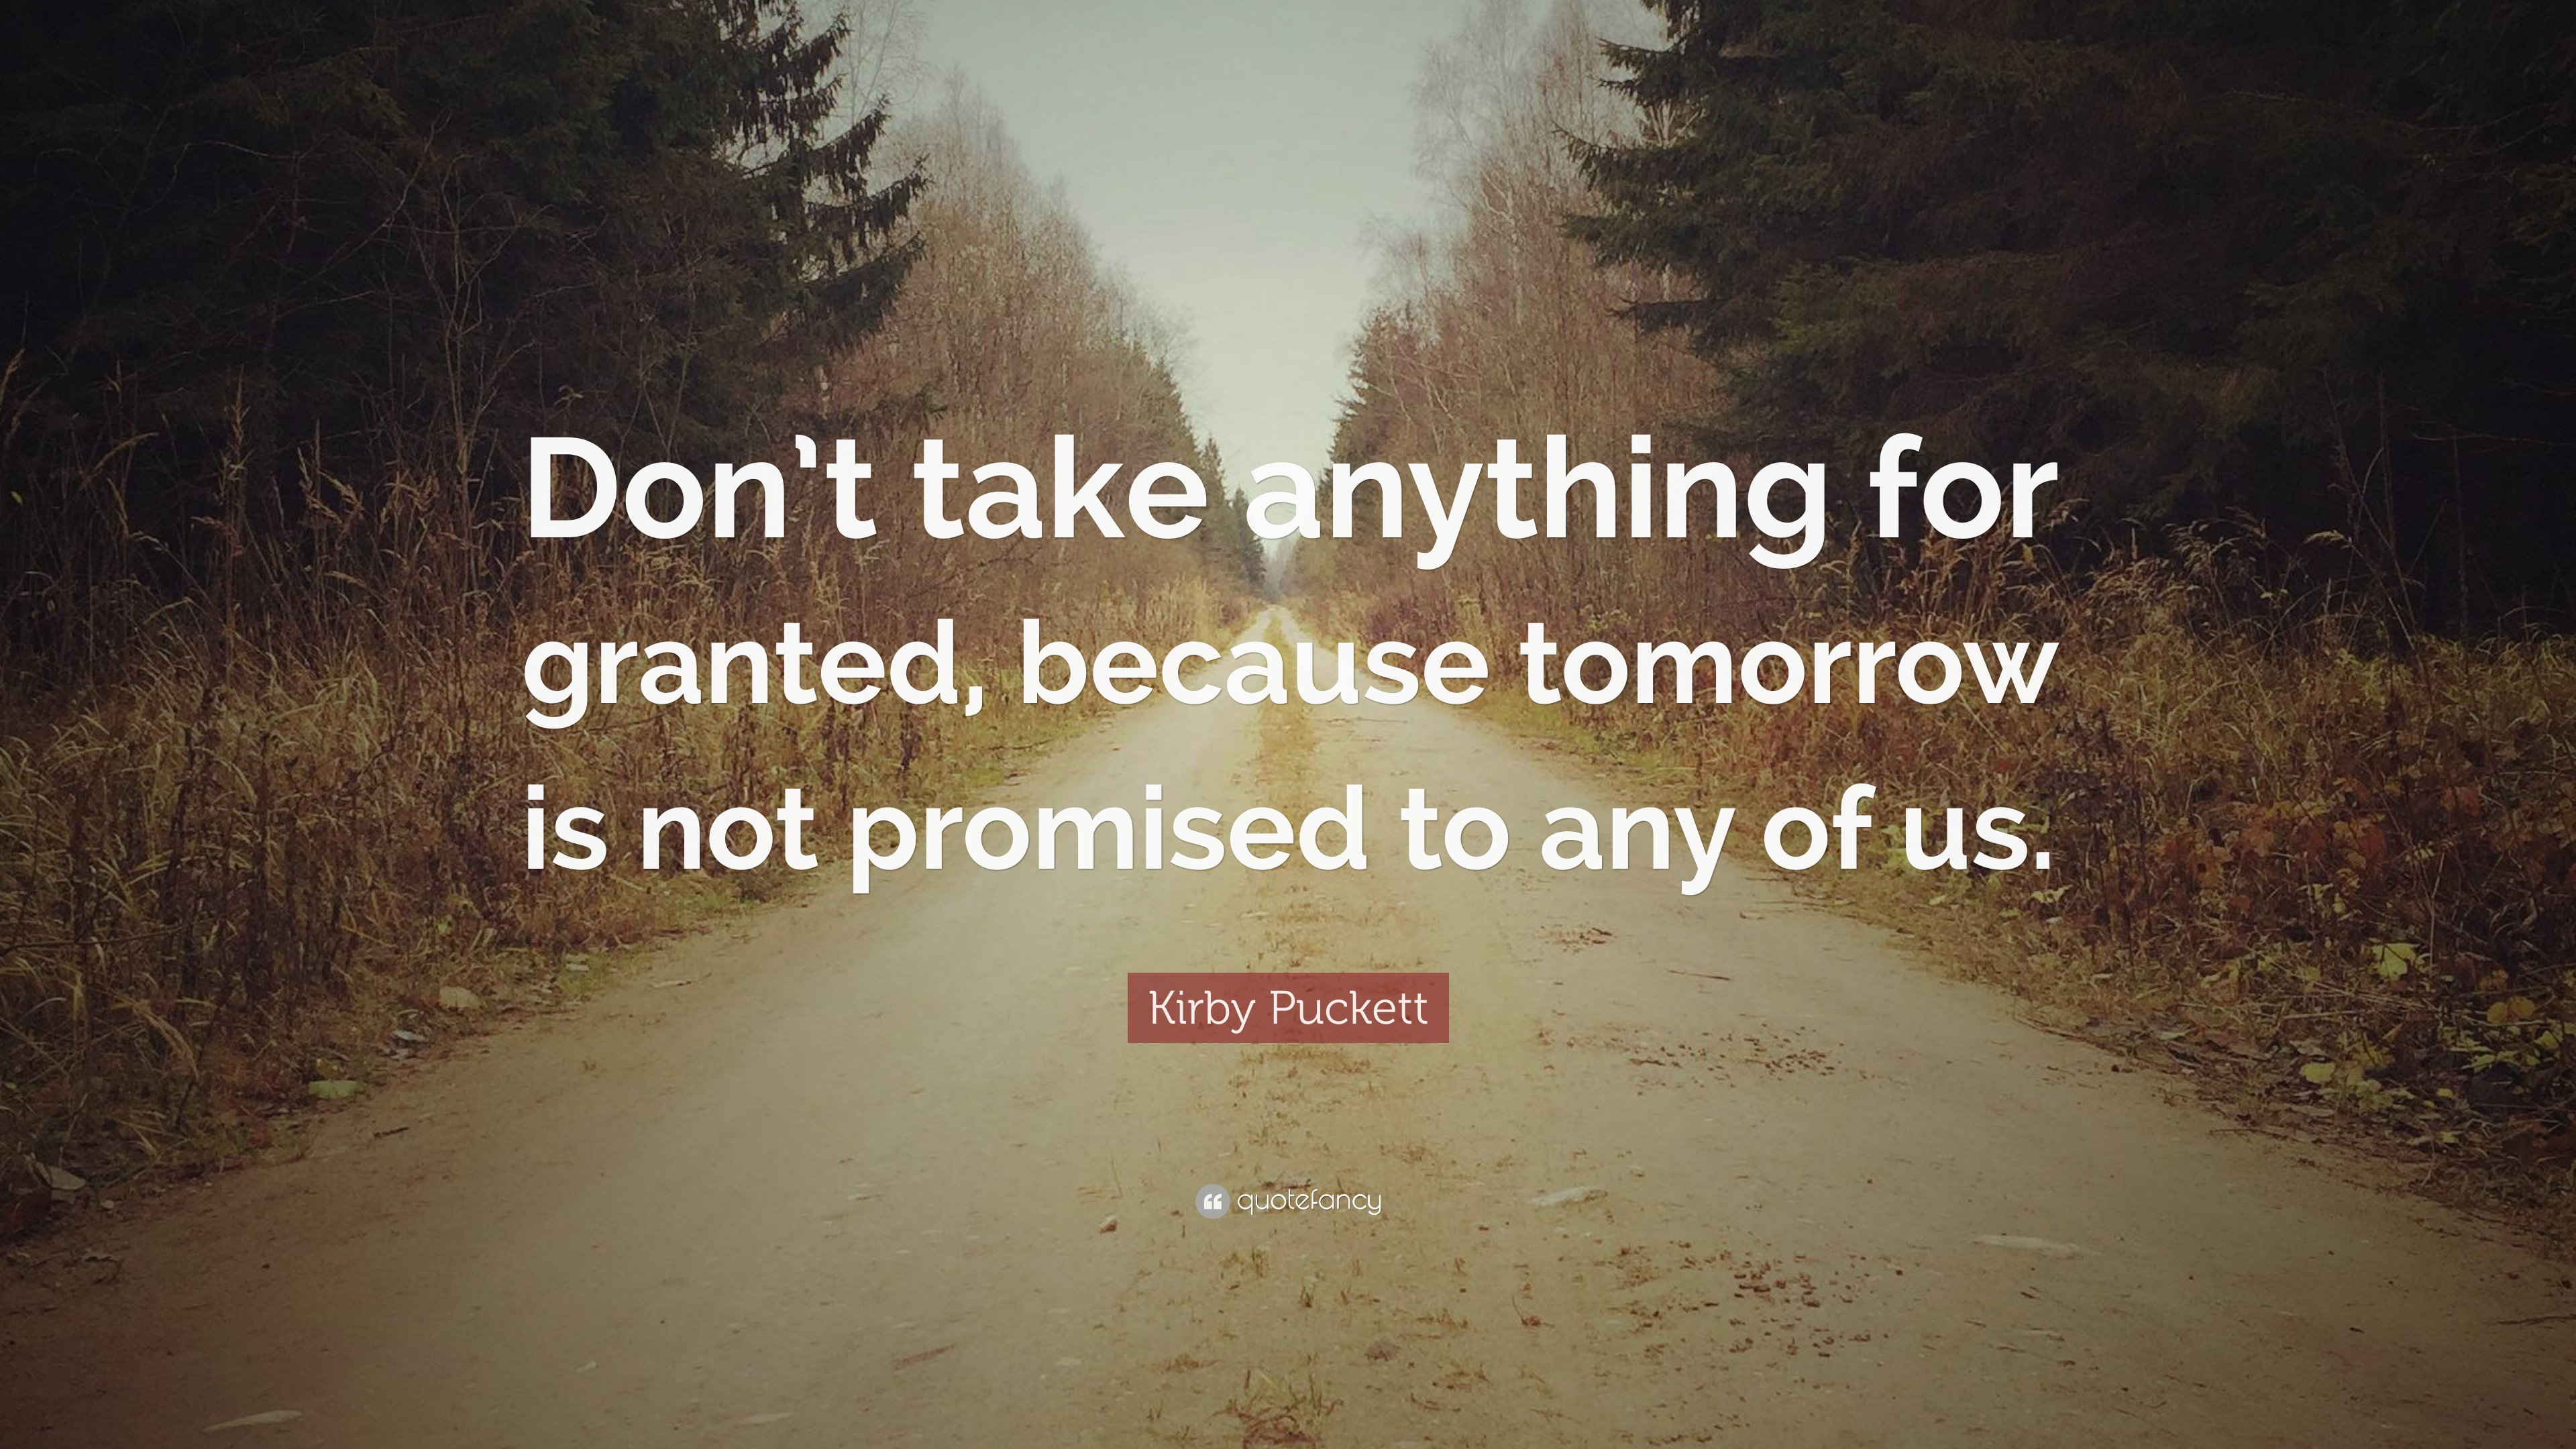 Kirby Puckett Quote: Dont take anything for granted